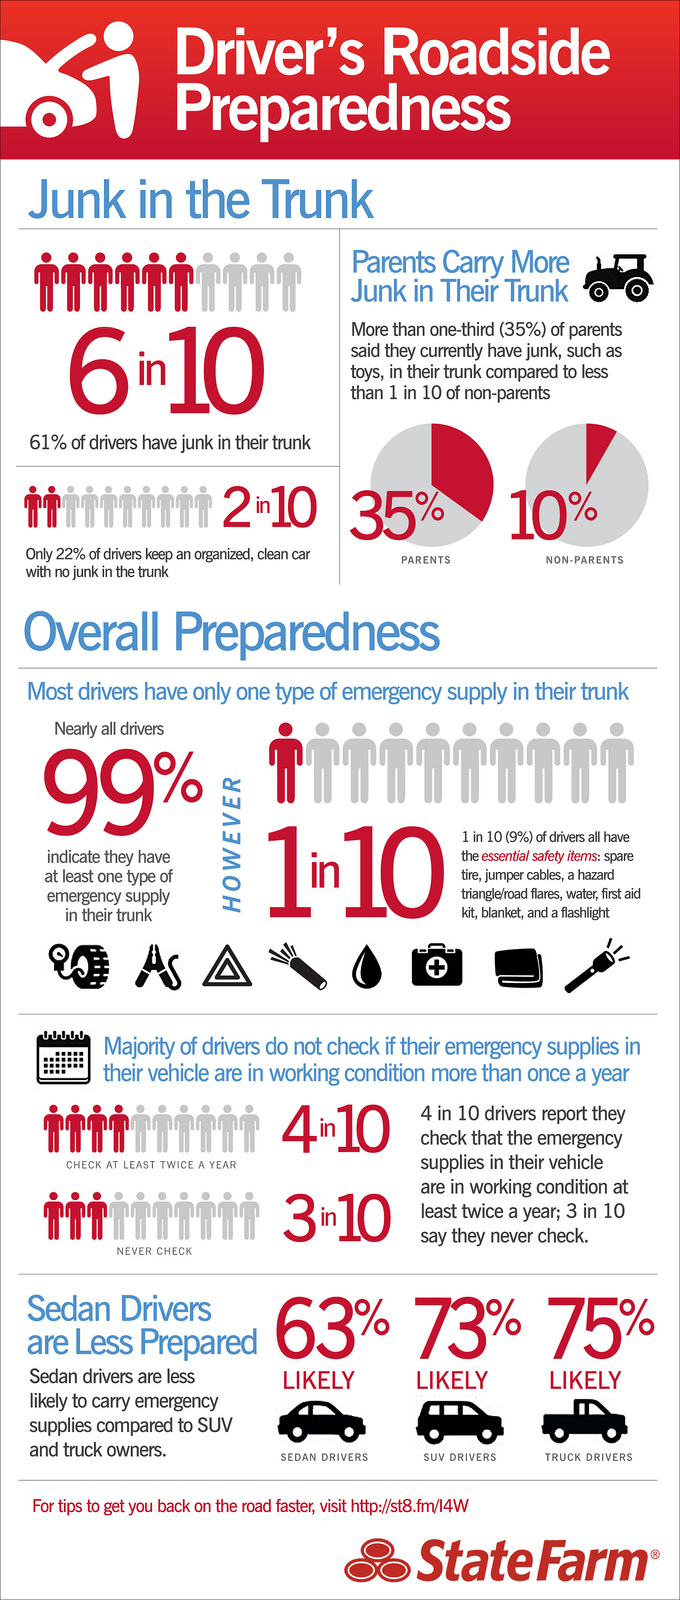 Driver's Roadside Preparedness - An Infographic from Infographics Showcase